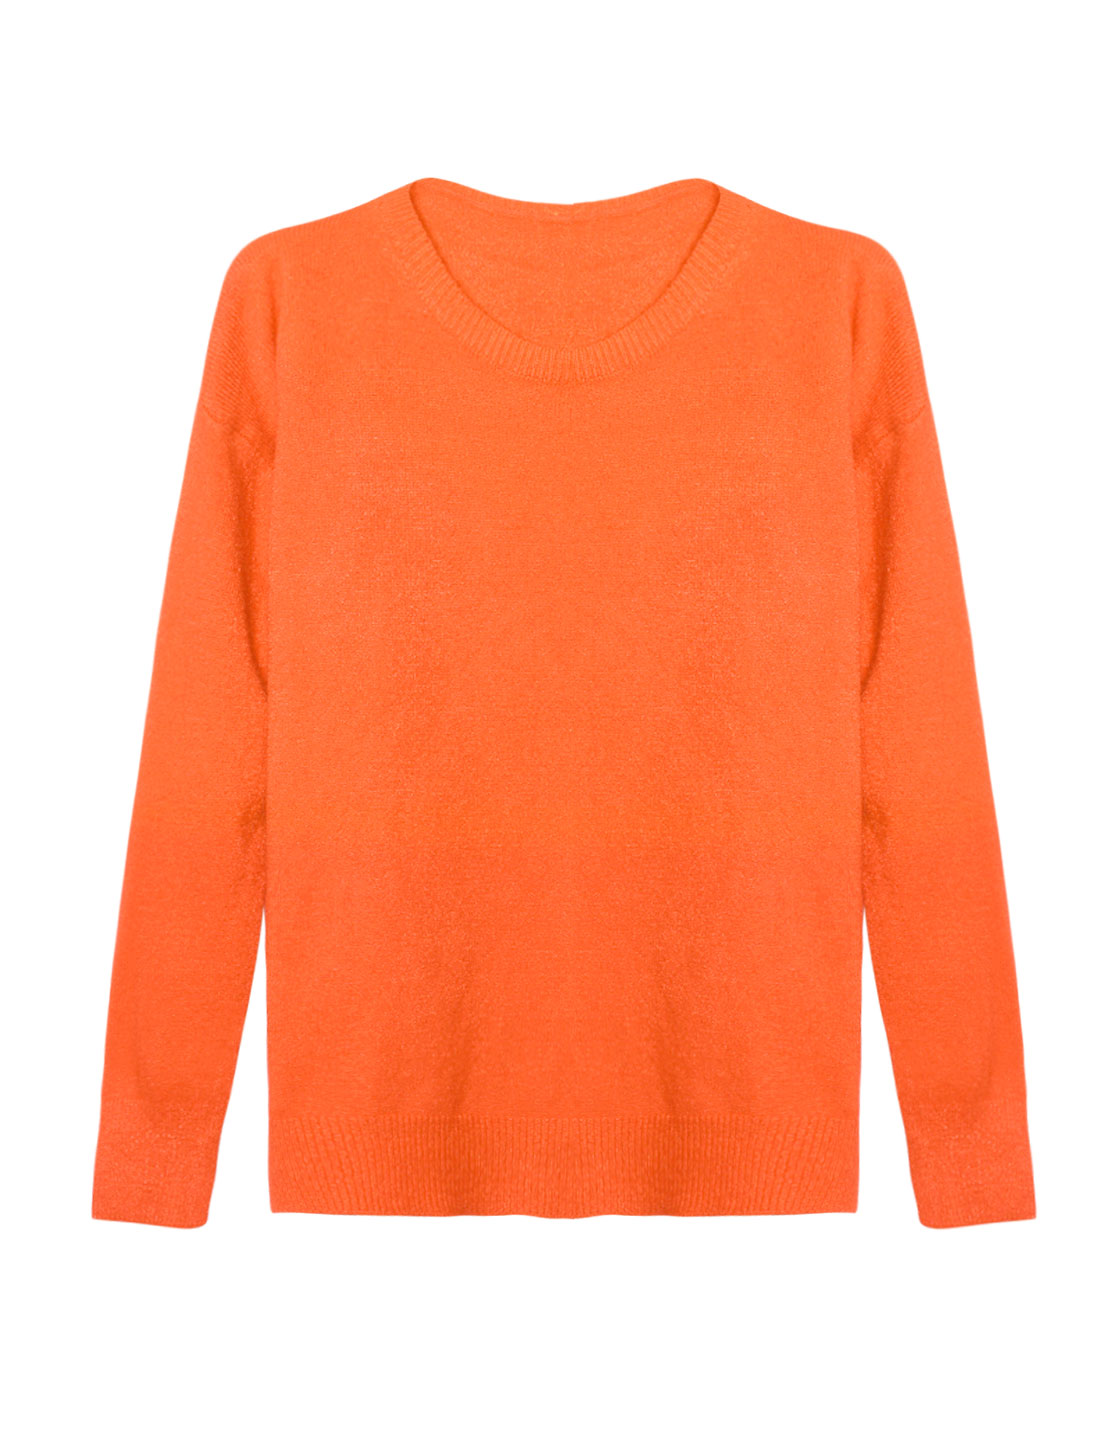 Woman Crew Neck Dolman Sleeves Ribbed Trim Knit Shirt Orange XS